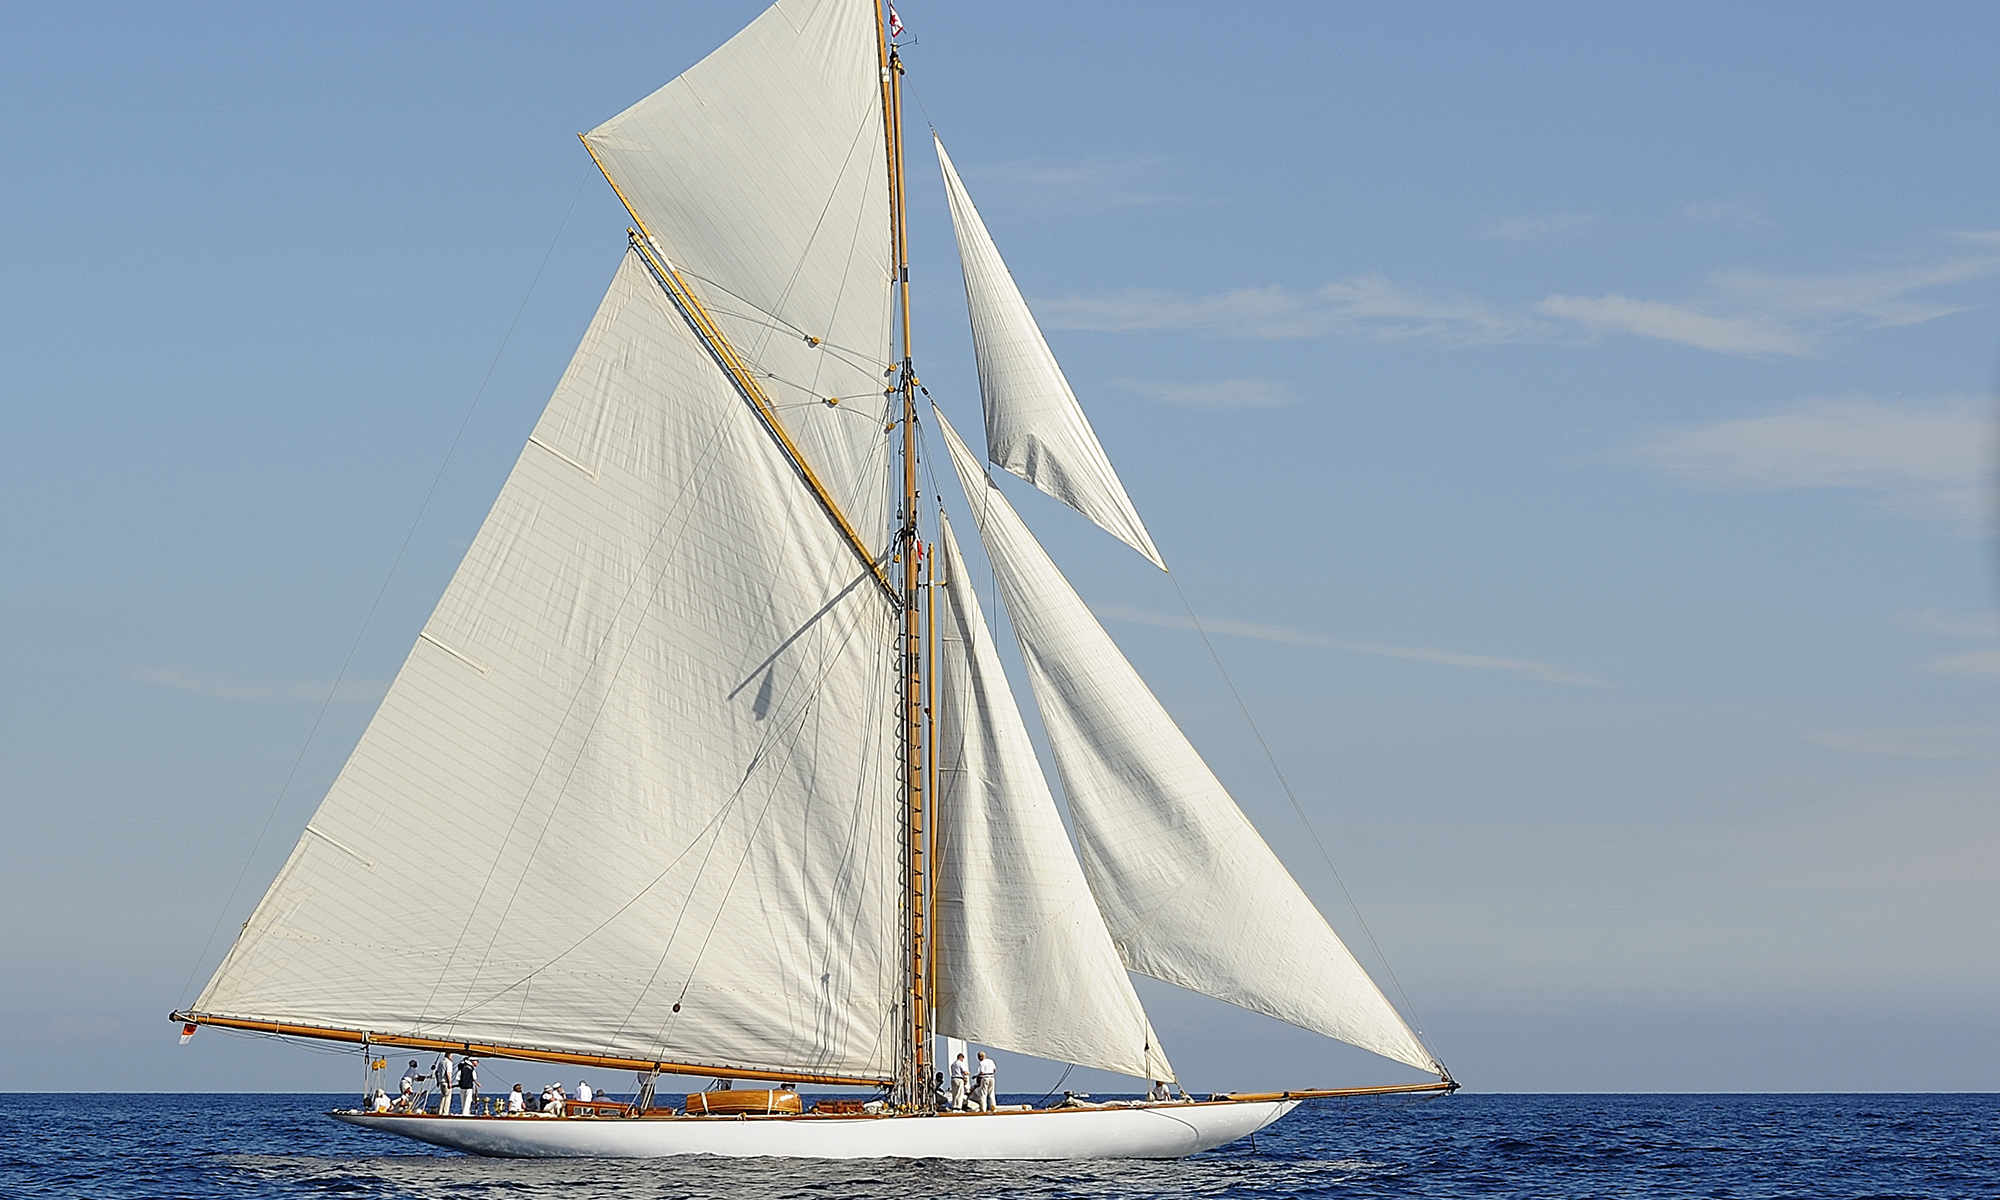 Amazing Sailboat Pictures & Backgrounds